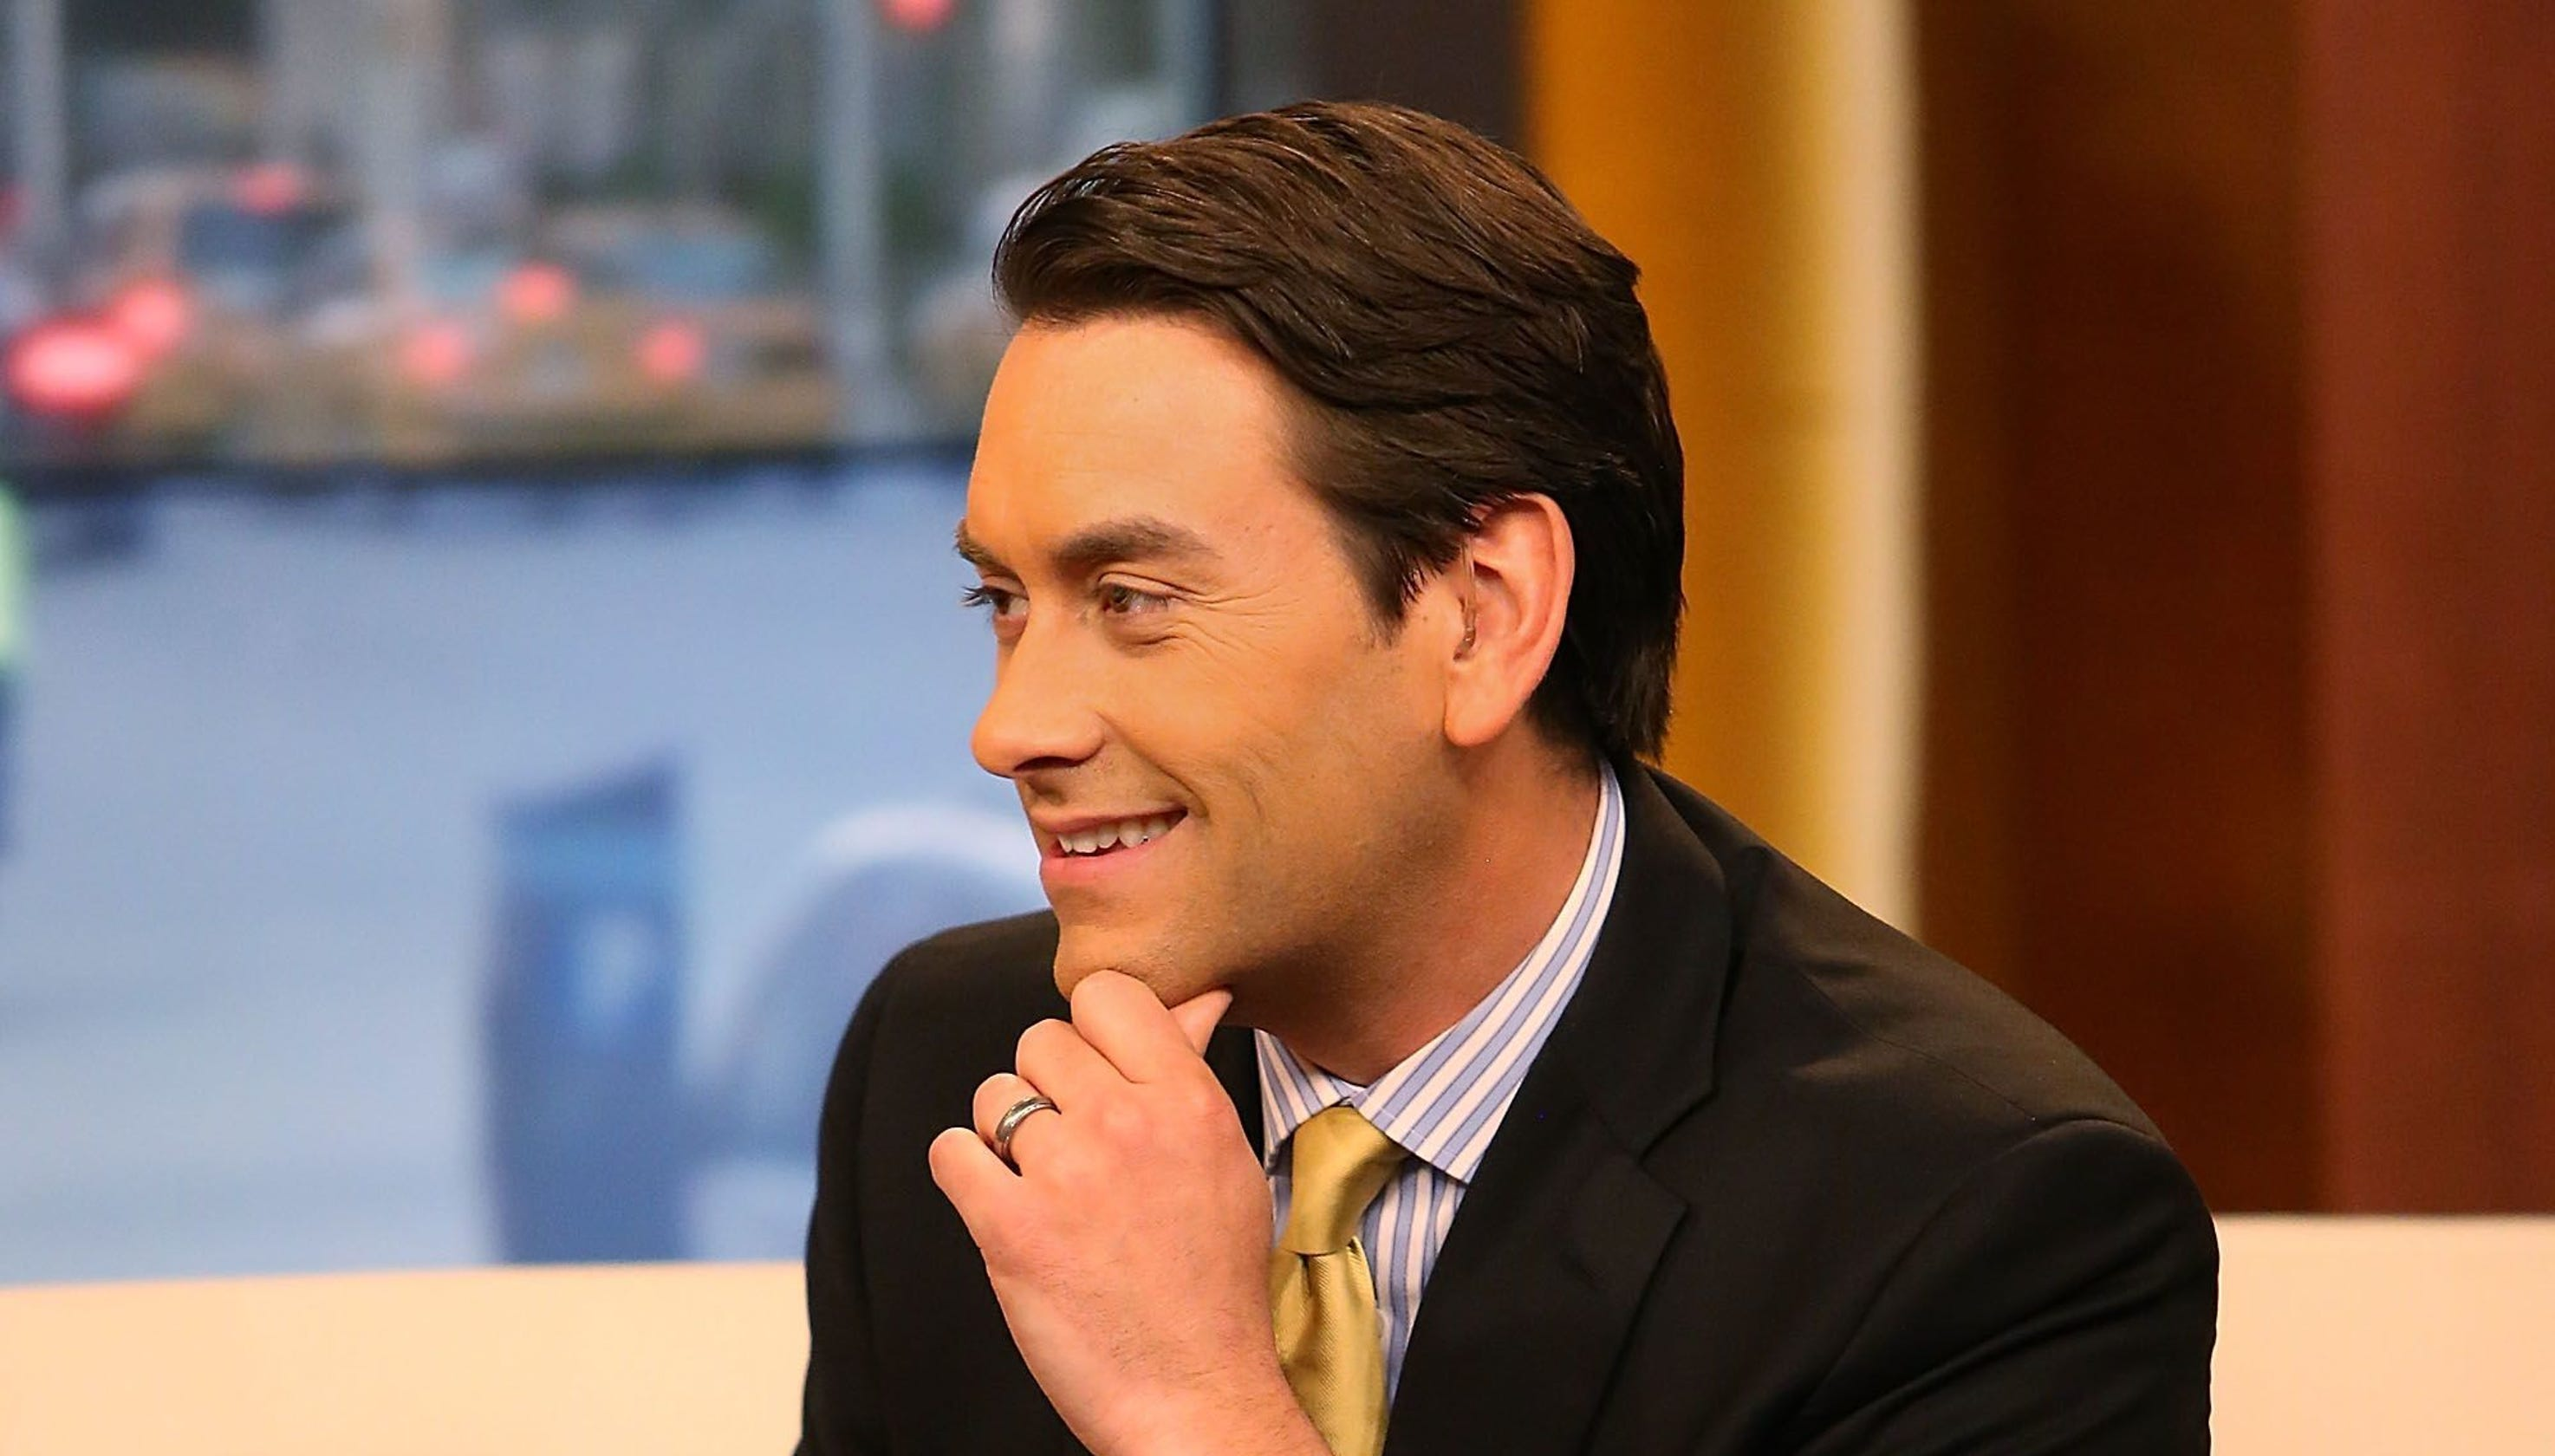 Ex-Fox & Friends co-host leaves country amid fraud allegations